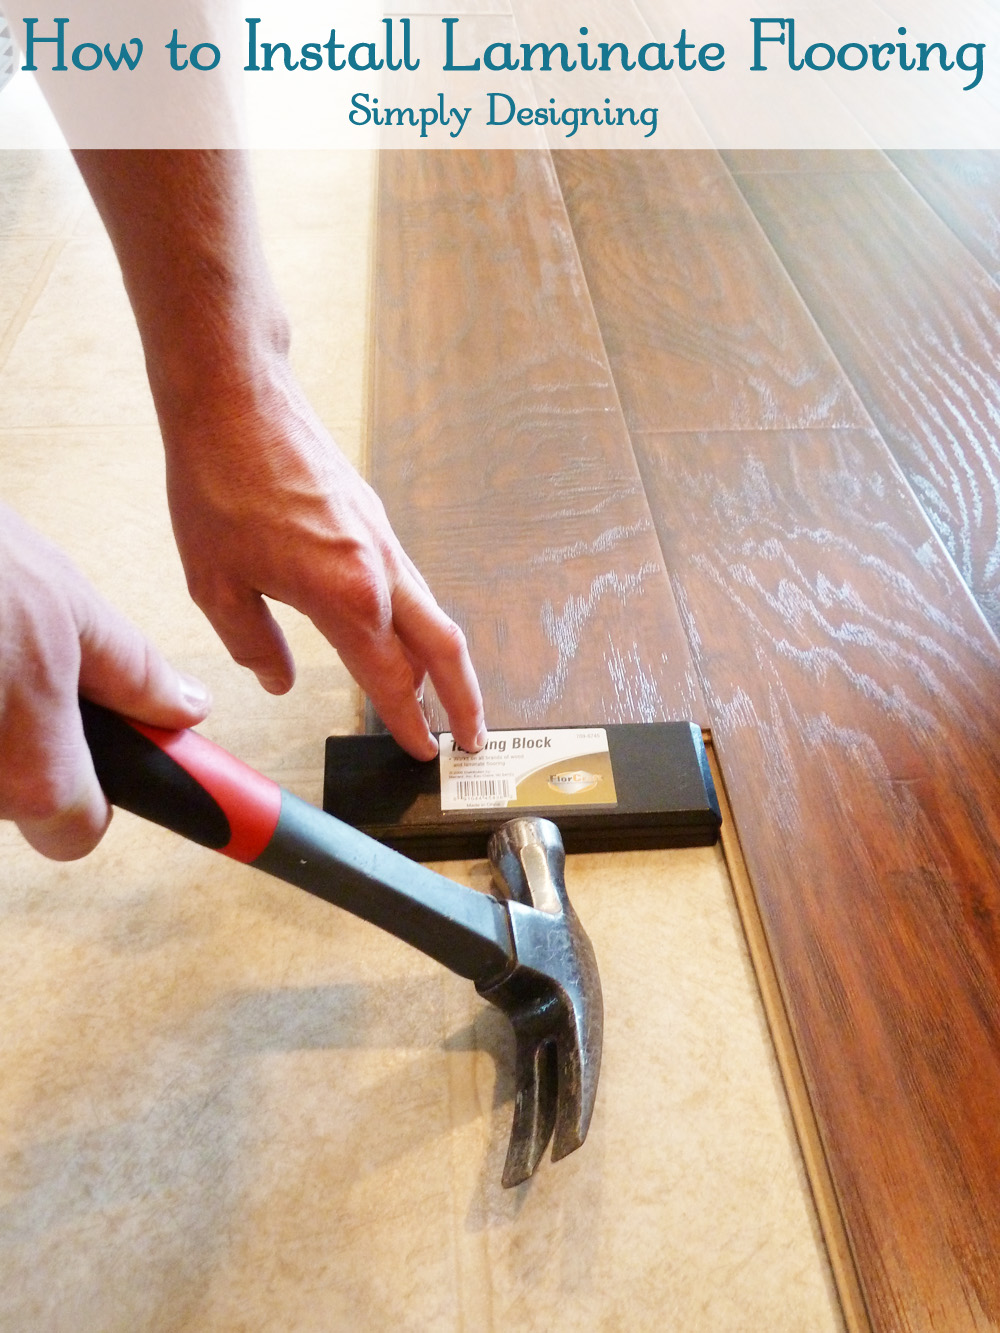 Laminate Flooring What Tool Cuts Laminate Flooring